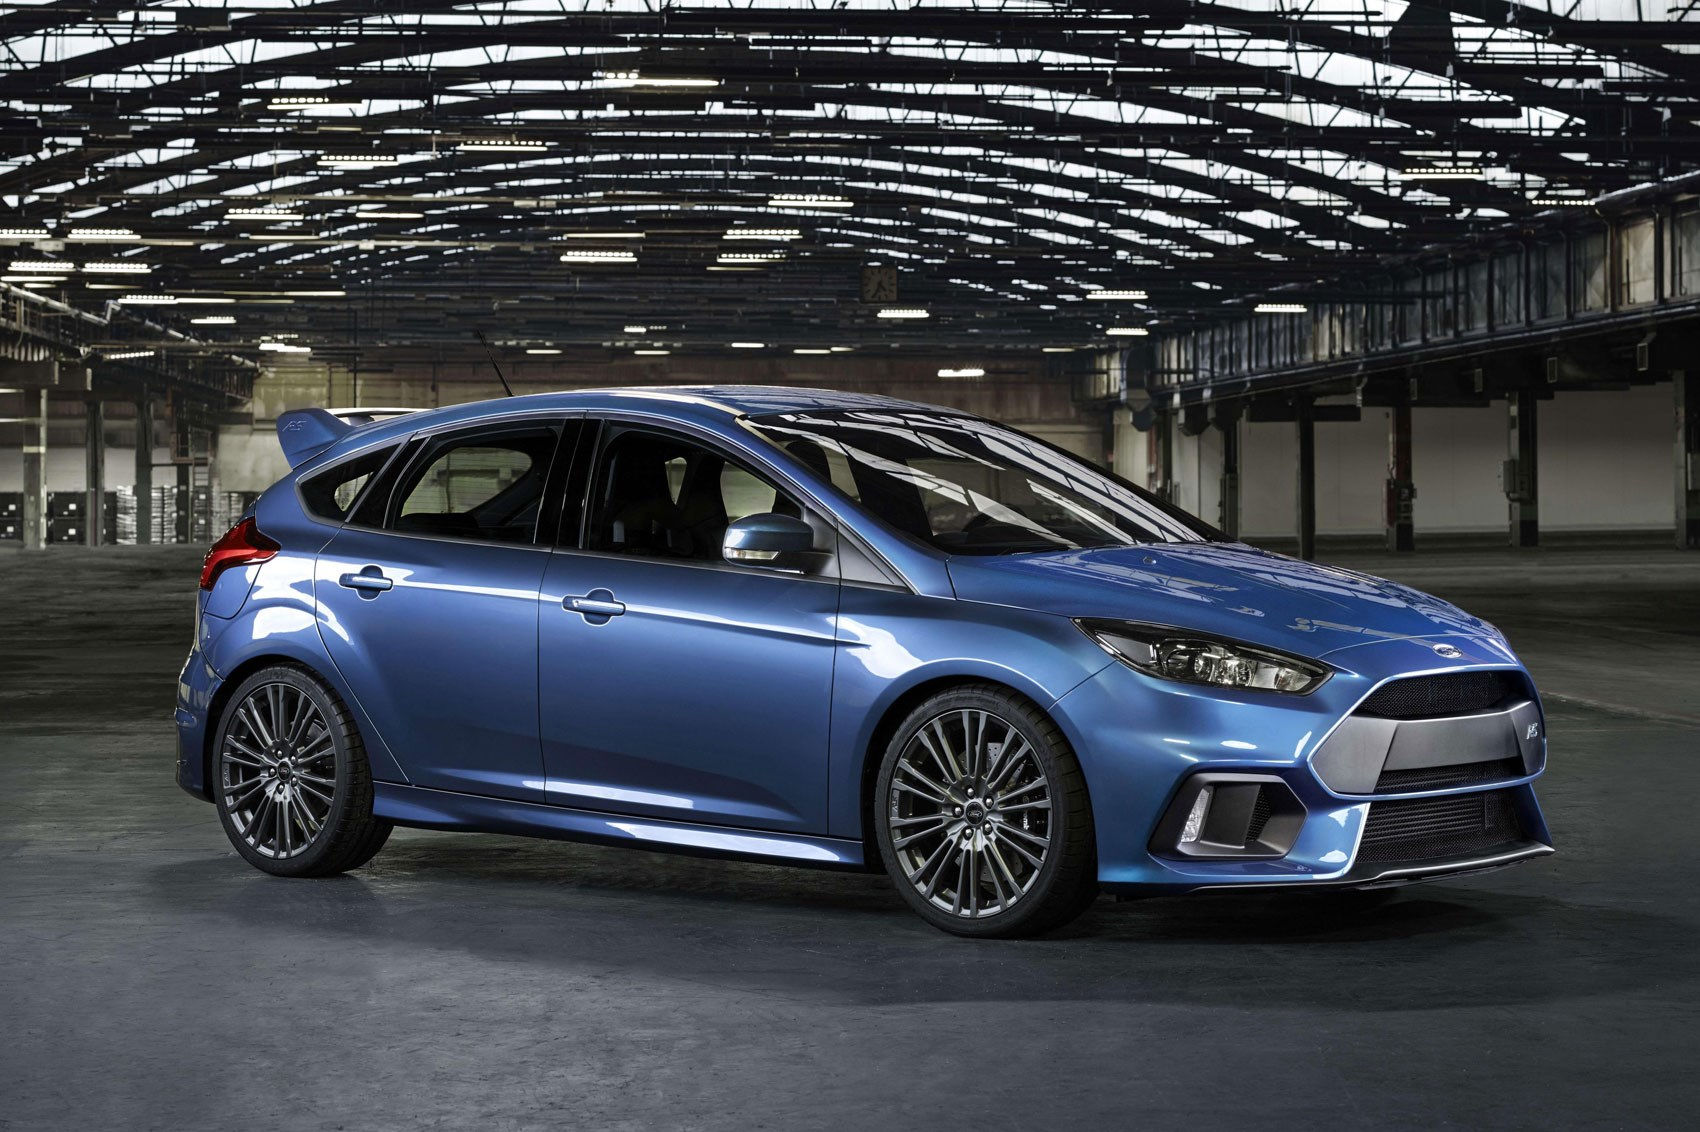 Ford Focus RS (2016) prices and stats revealed: 165mph, £28,940 ...